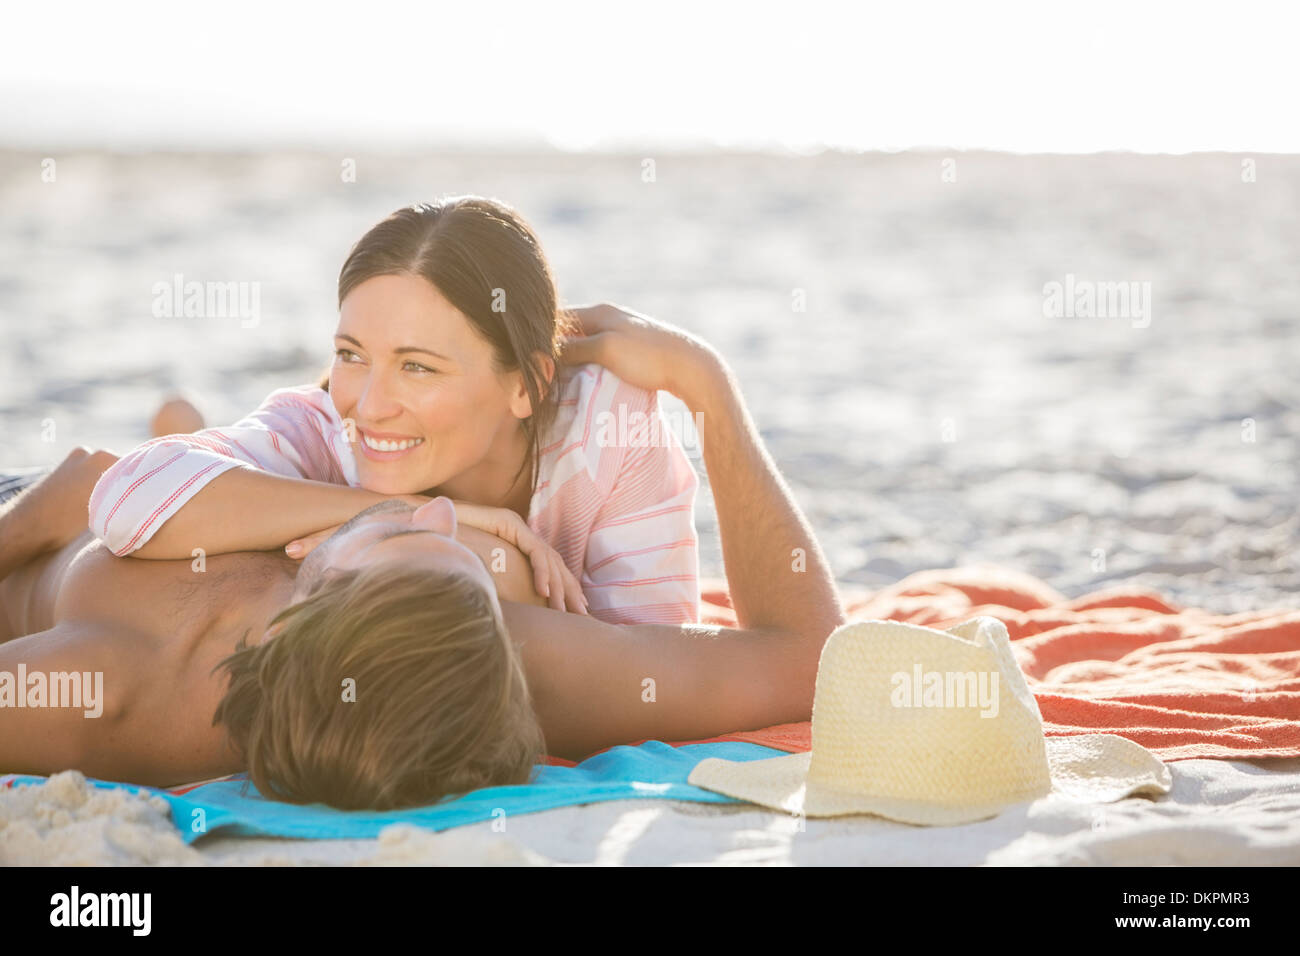 Couple relaxing together on beach - Stock Image